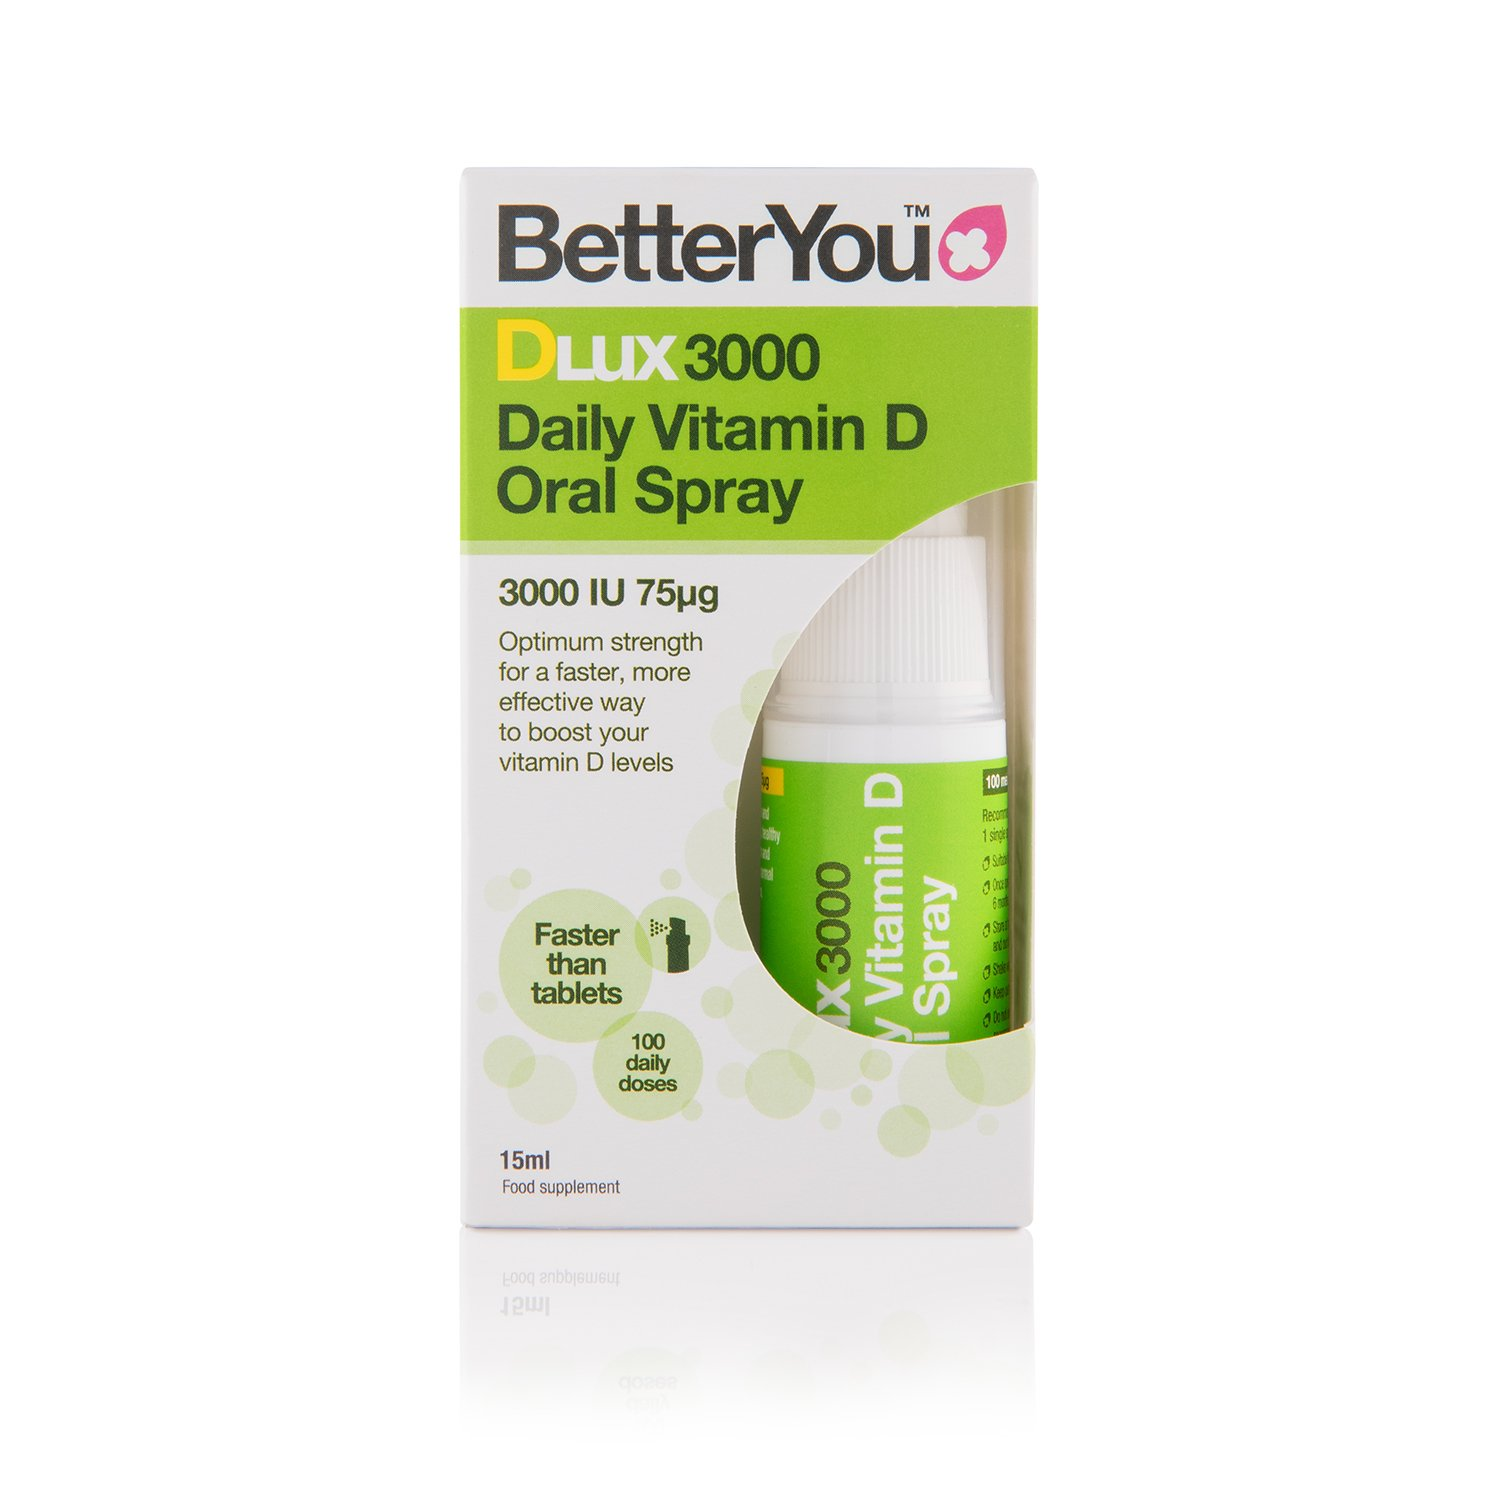 Better You Dlux Vitamin D Oral Spray 15ml product image